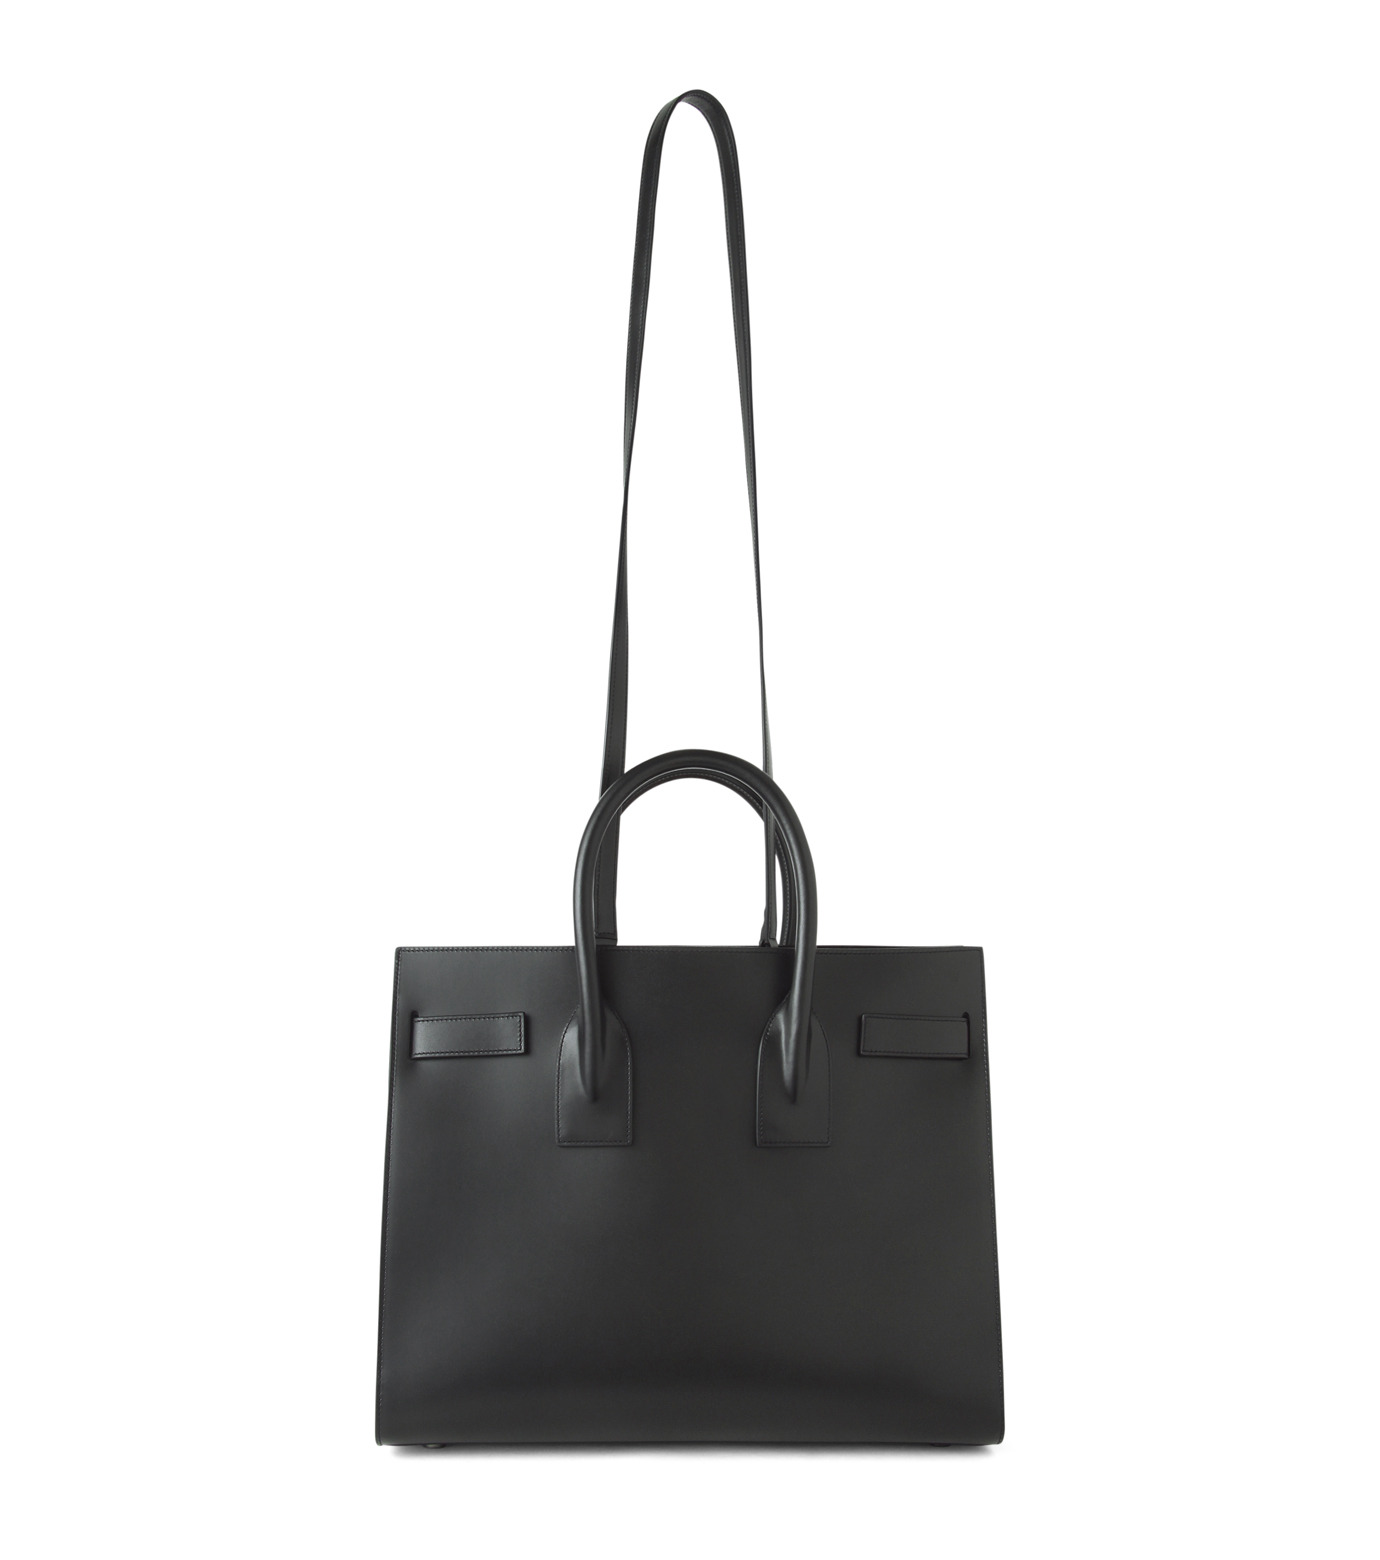 SAINT LAURENT(サンローラン)のSac de Jour Small Double Face-BLACK(ハンドバッグ/hand bag)-378299-BX62V-13 拡大詳細画像3